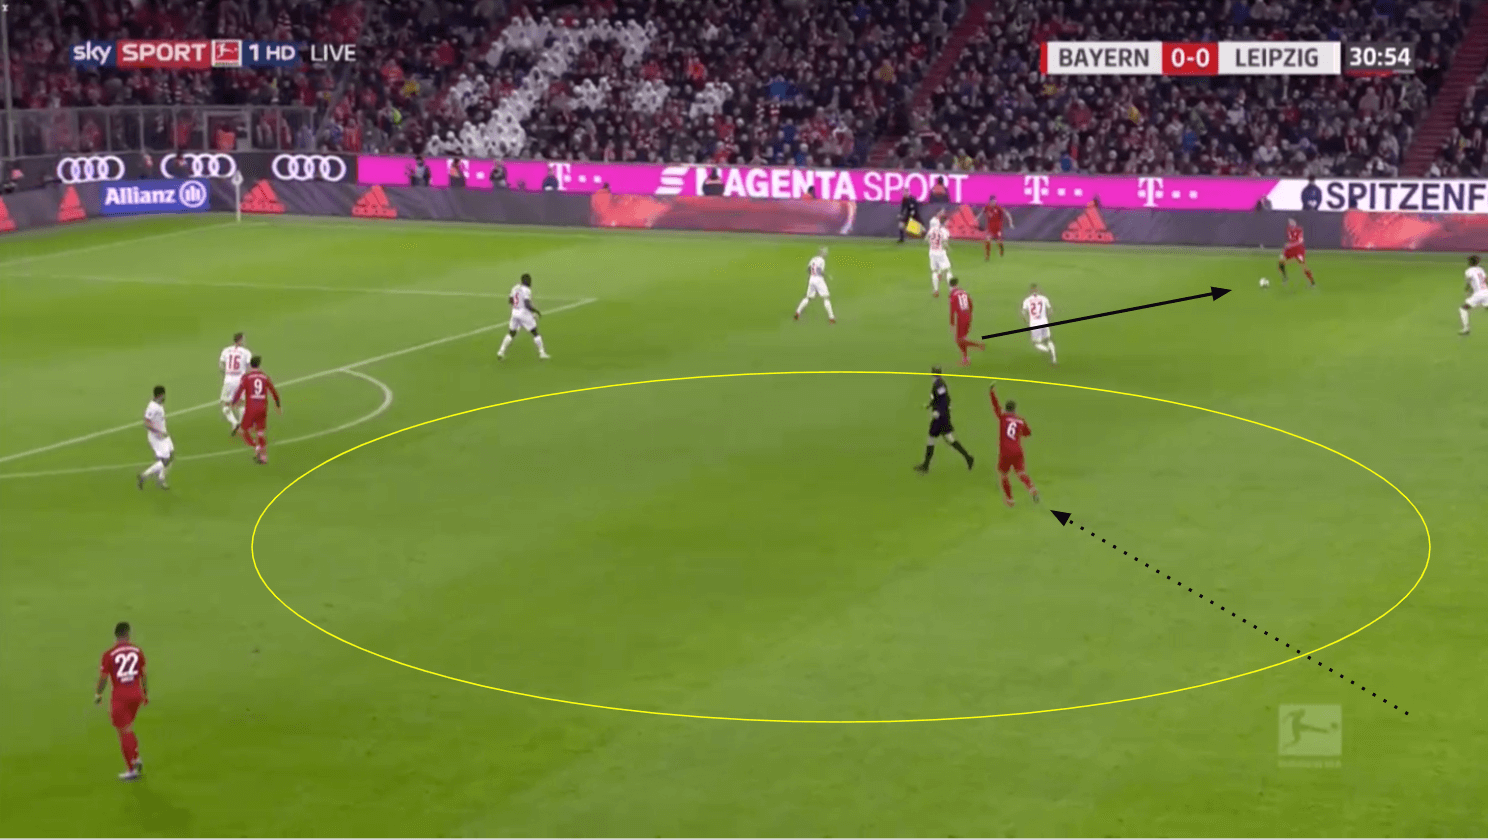 Thiago 2019/20 - scout report - tactical analysis - tactics